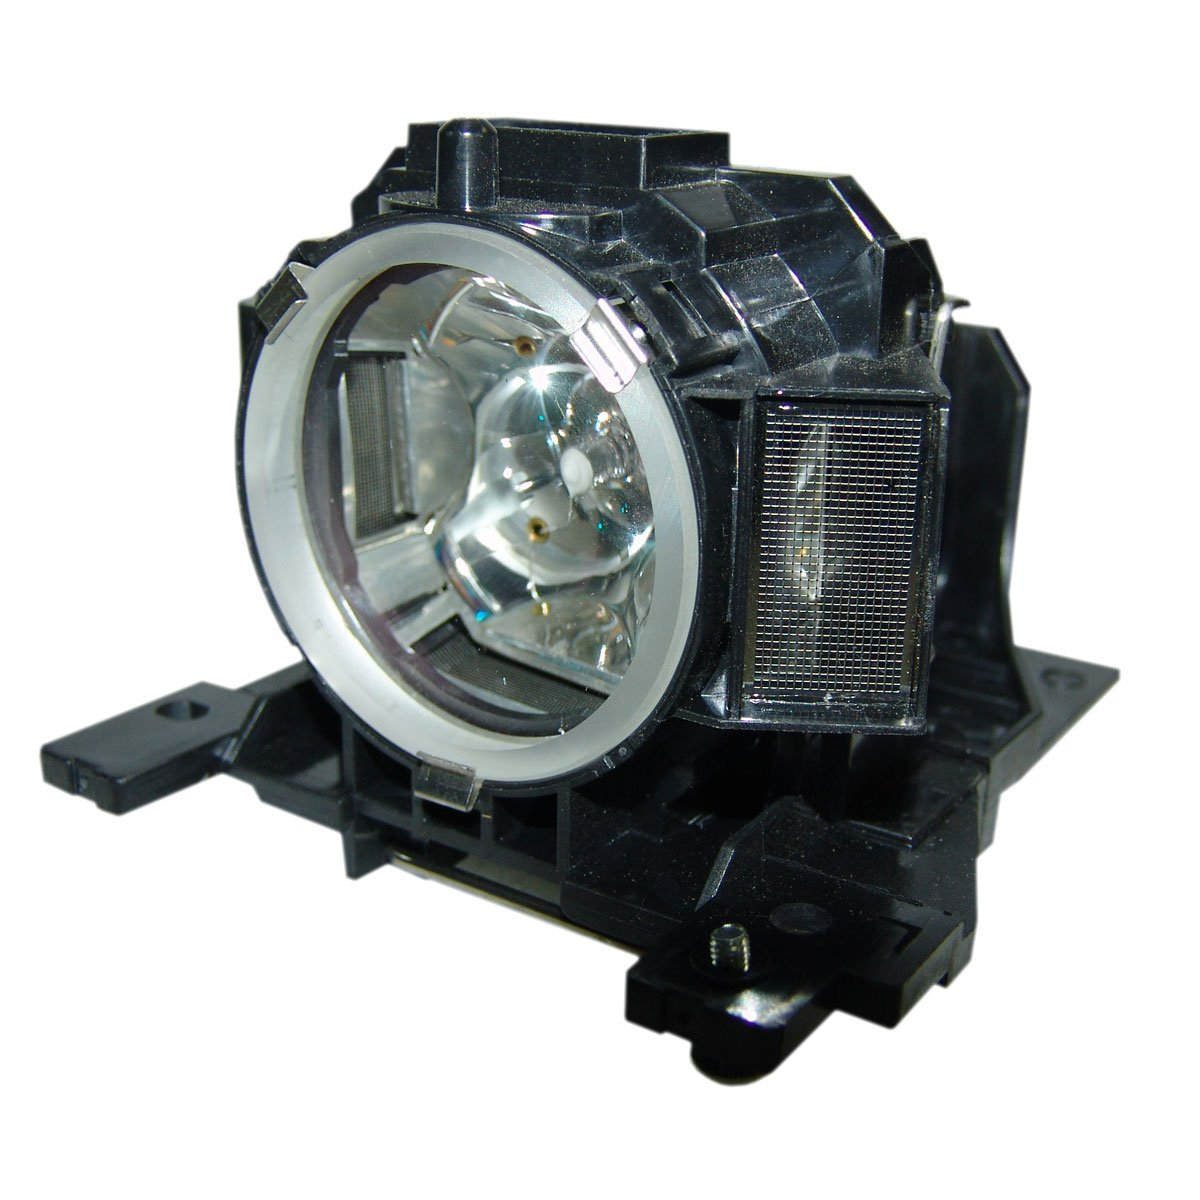 free shipping Projector lamp DT00893 for HITACHI CP-A52/ED-A101/ED-A111/CP-A200 with housing/case<br><br>Aliexpress